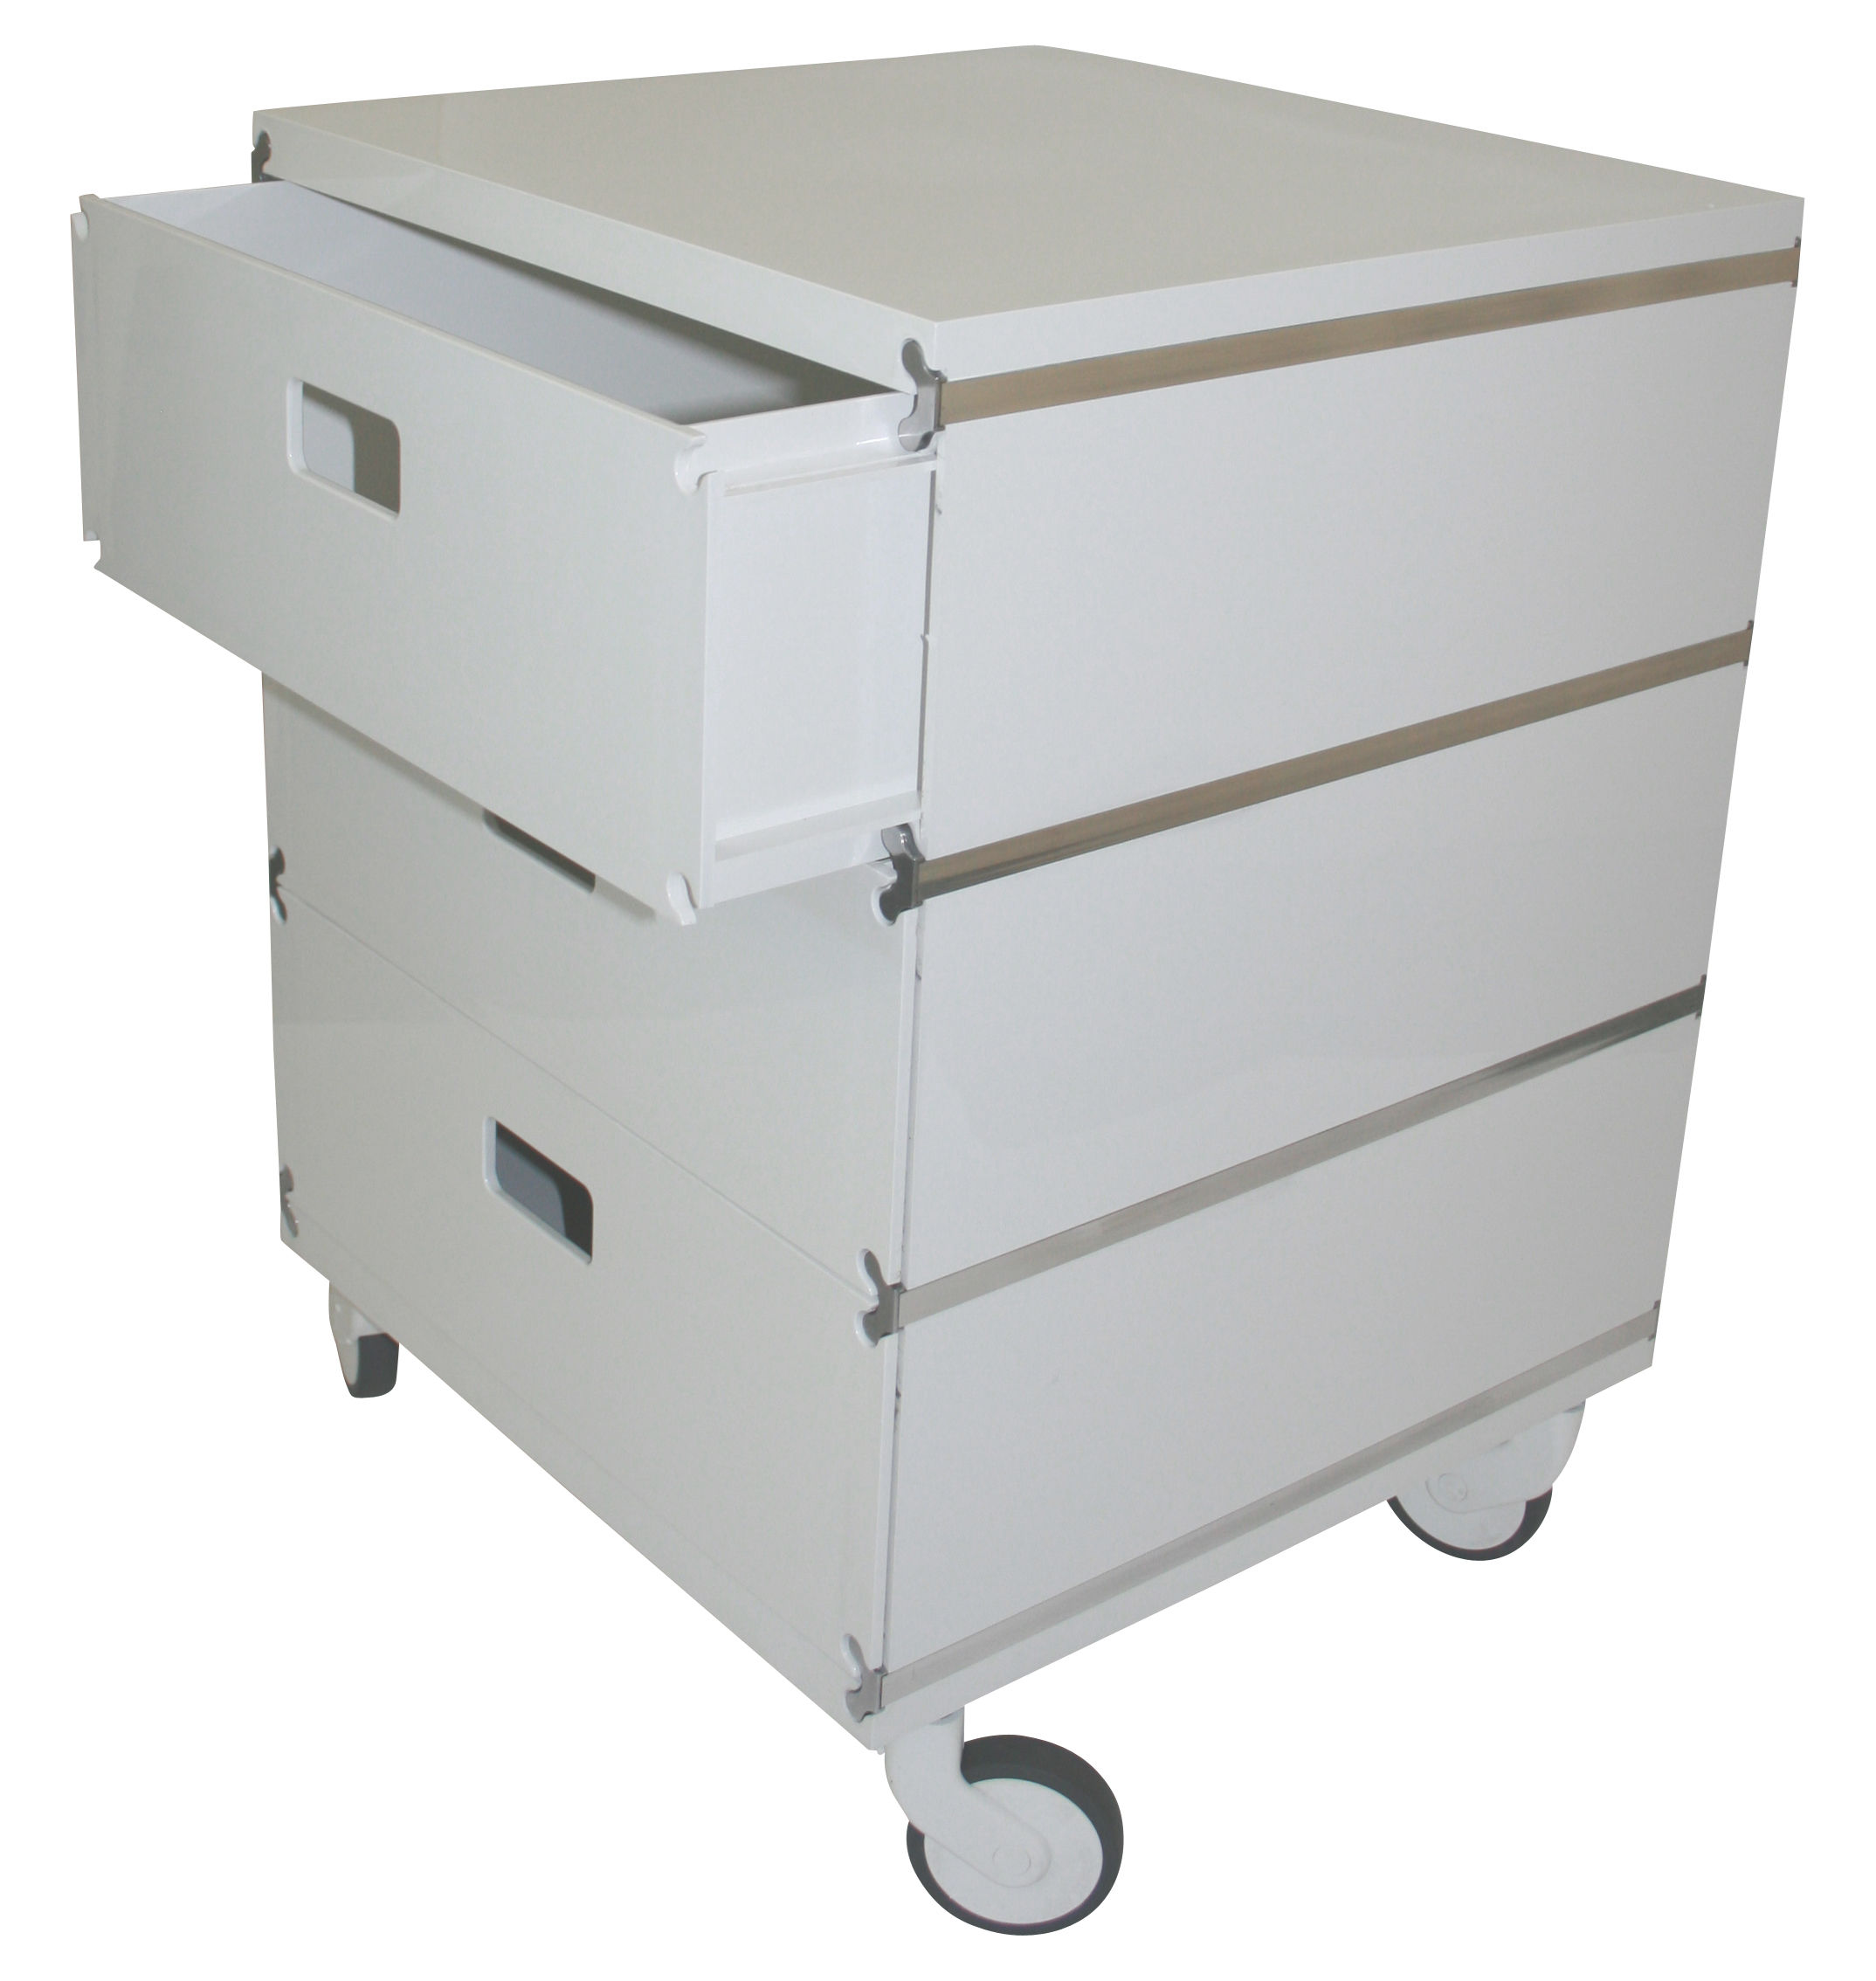 Plus Unit Mobile Container 3 Drawers On Wheels White